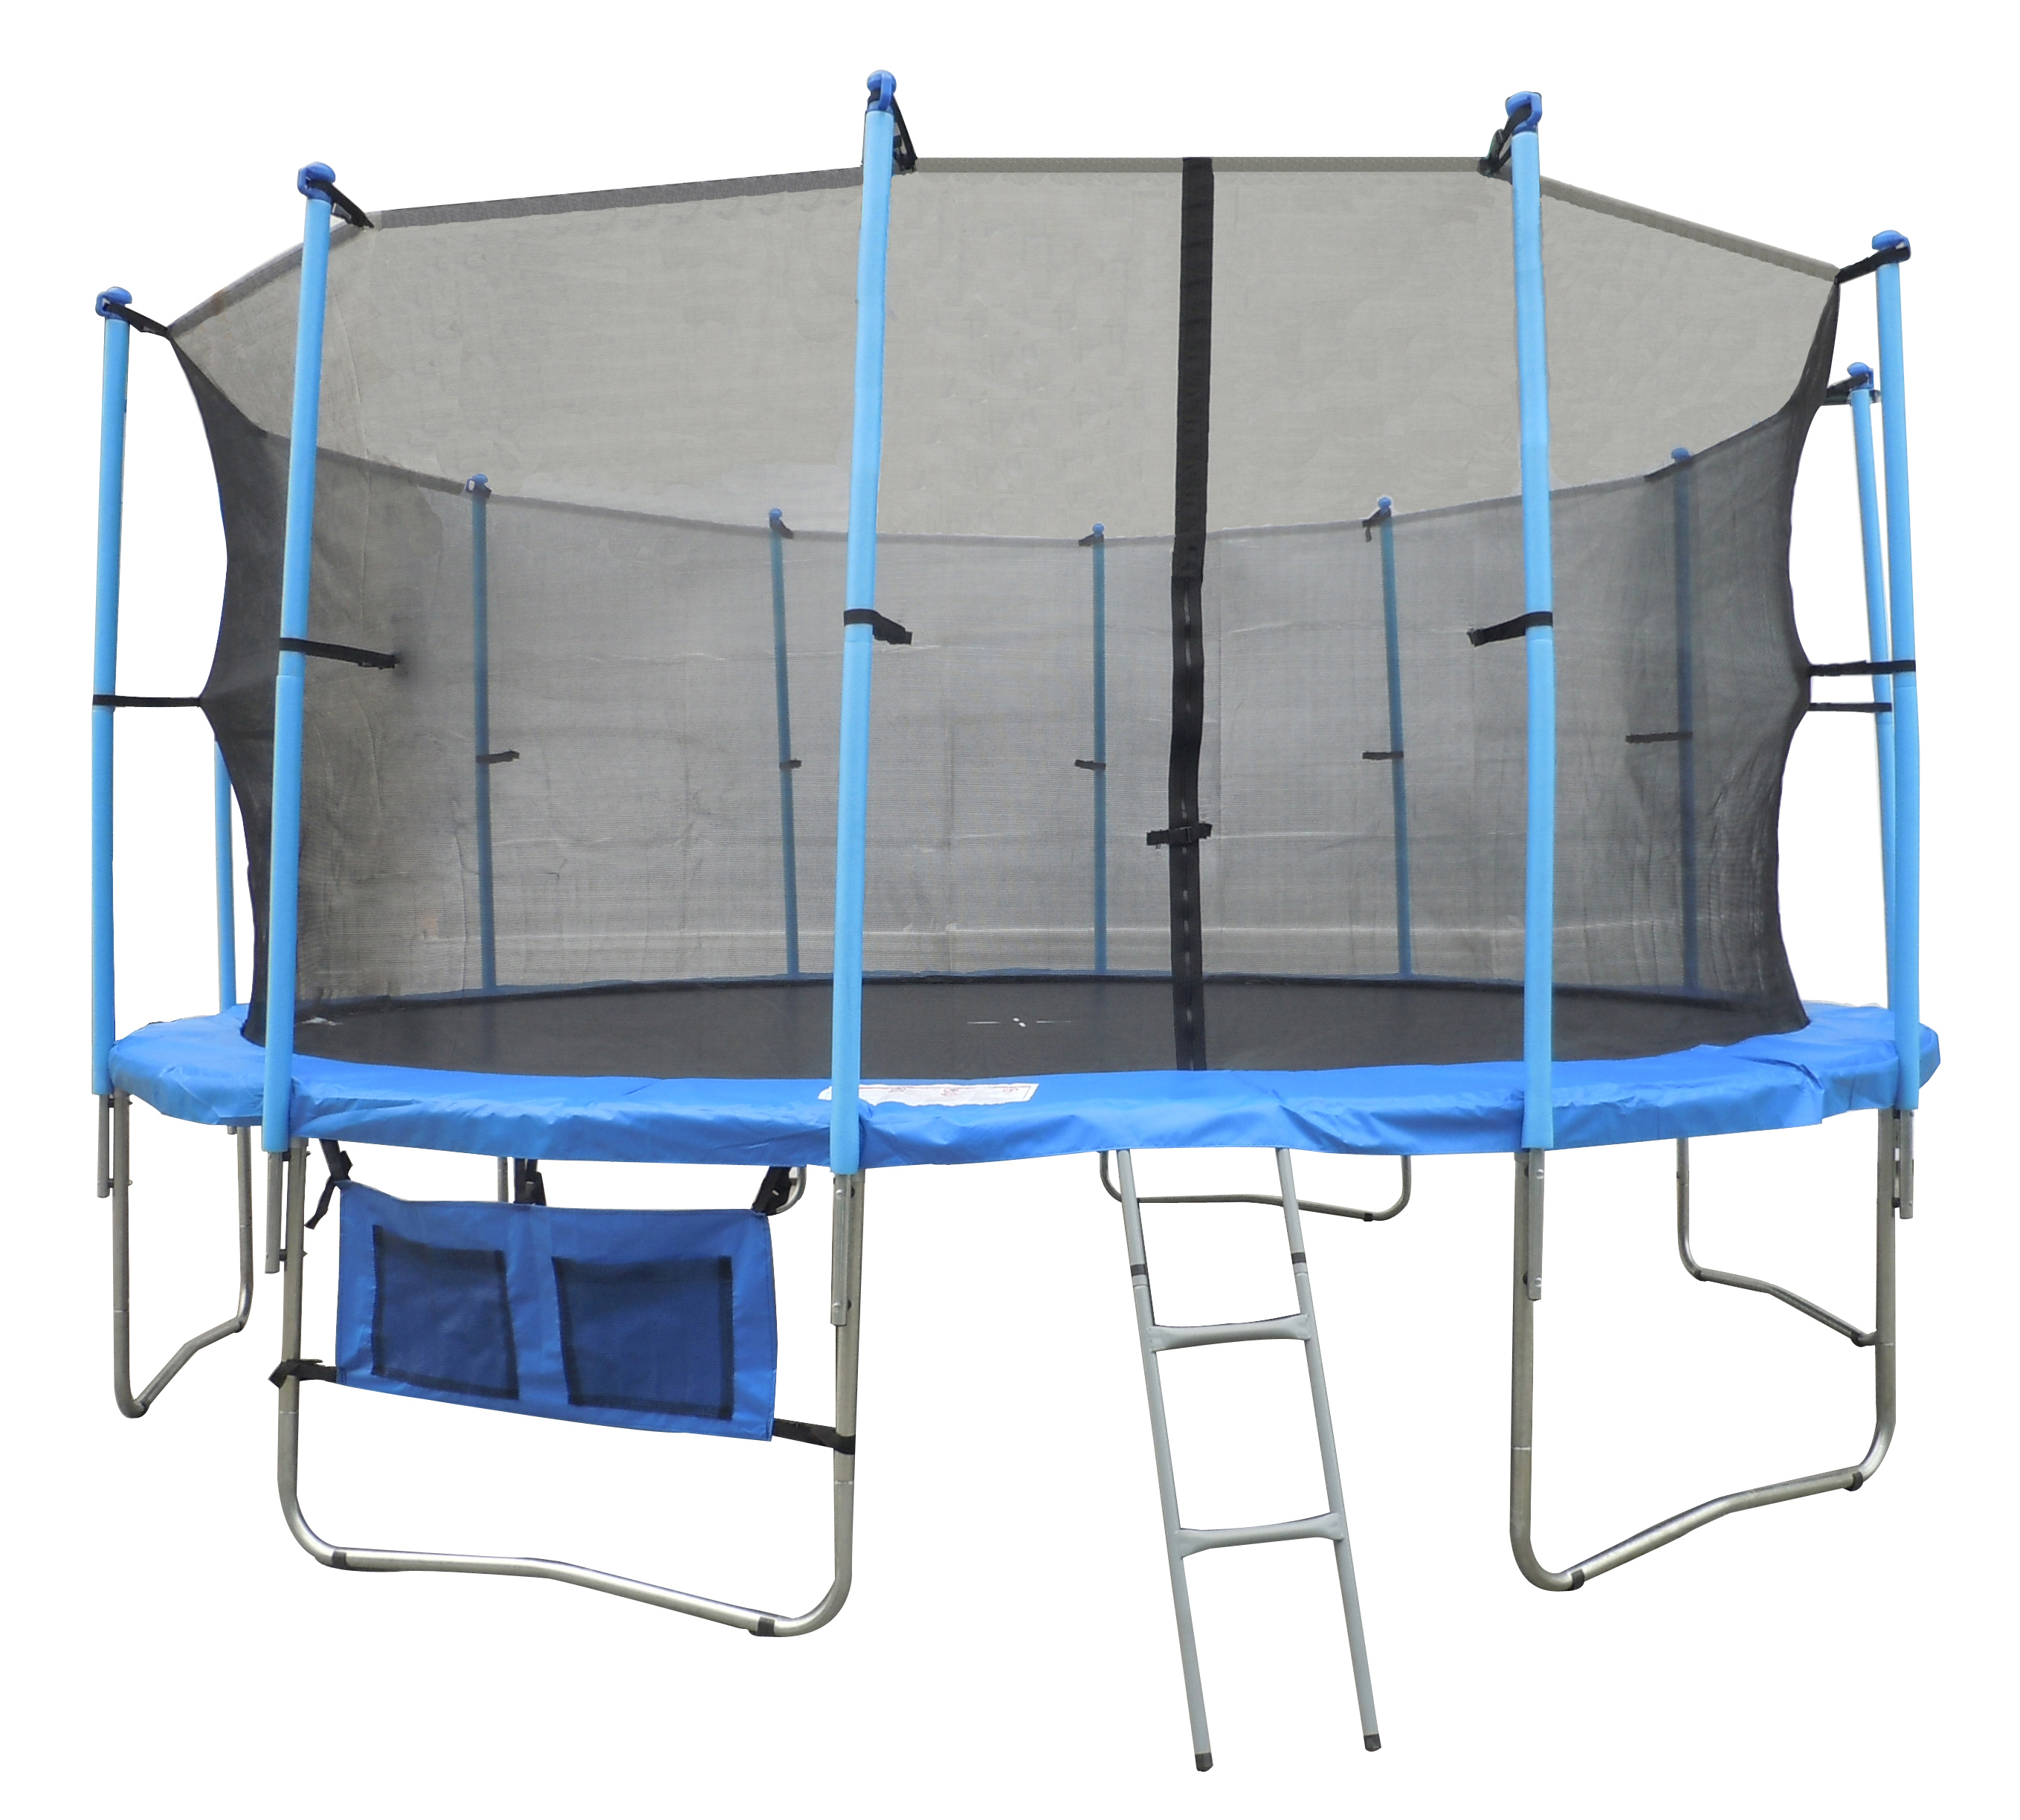 New 16ft Trampoline with Ladder Net Enclosure Safety Padding Weather Cover 16 FT